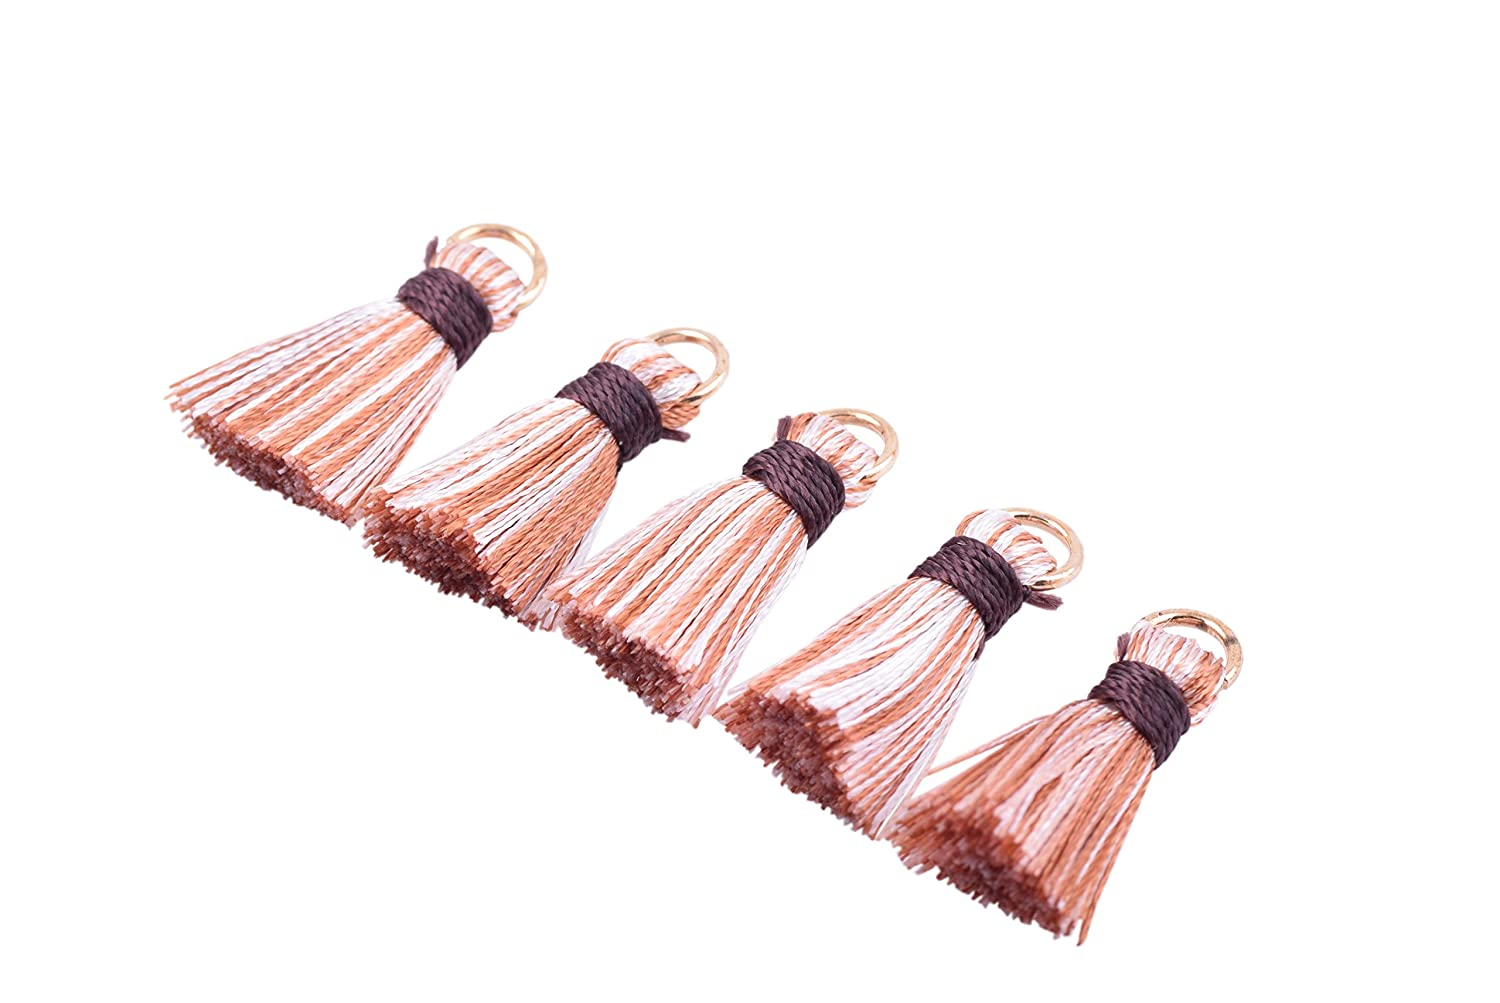 KONMAY 20pcs 0.8 Small Tiny Exquisite Silky Craft Tassels with Golden Jump Ring for DIY Projects Beige 2.0cm